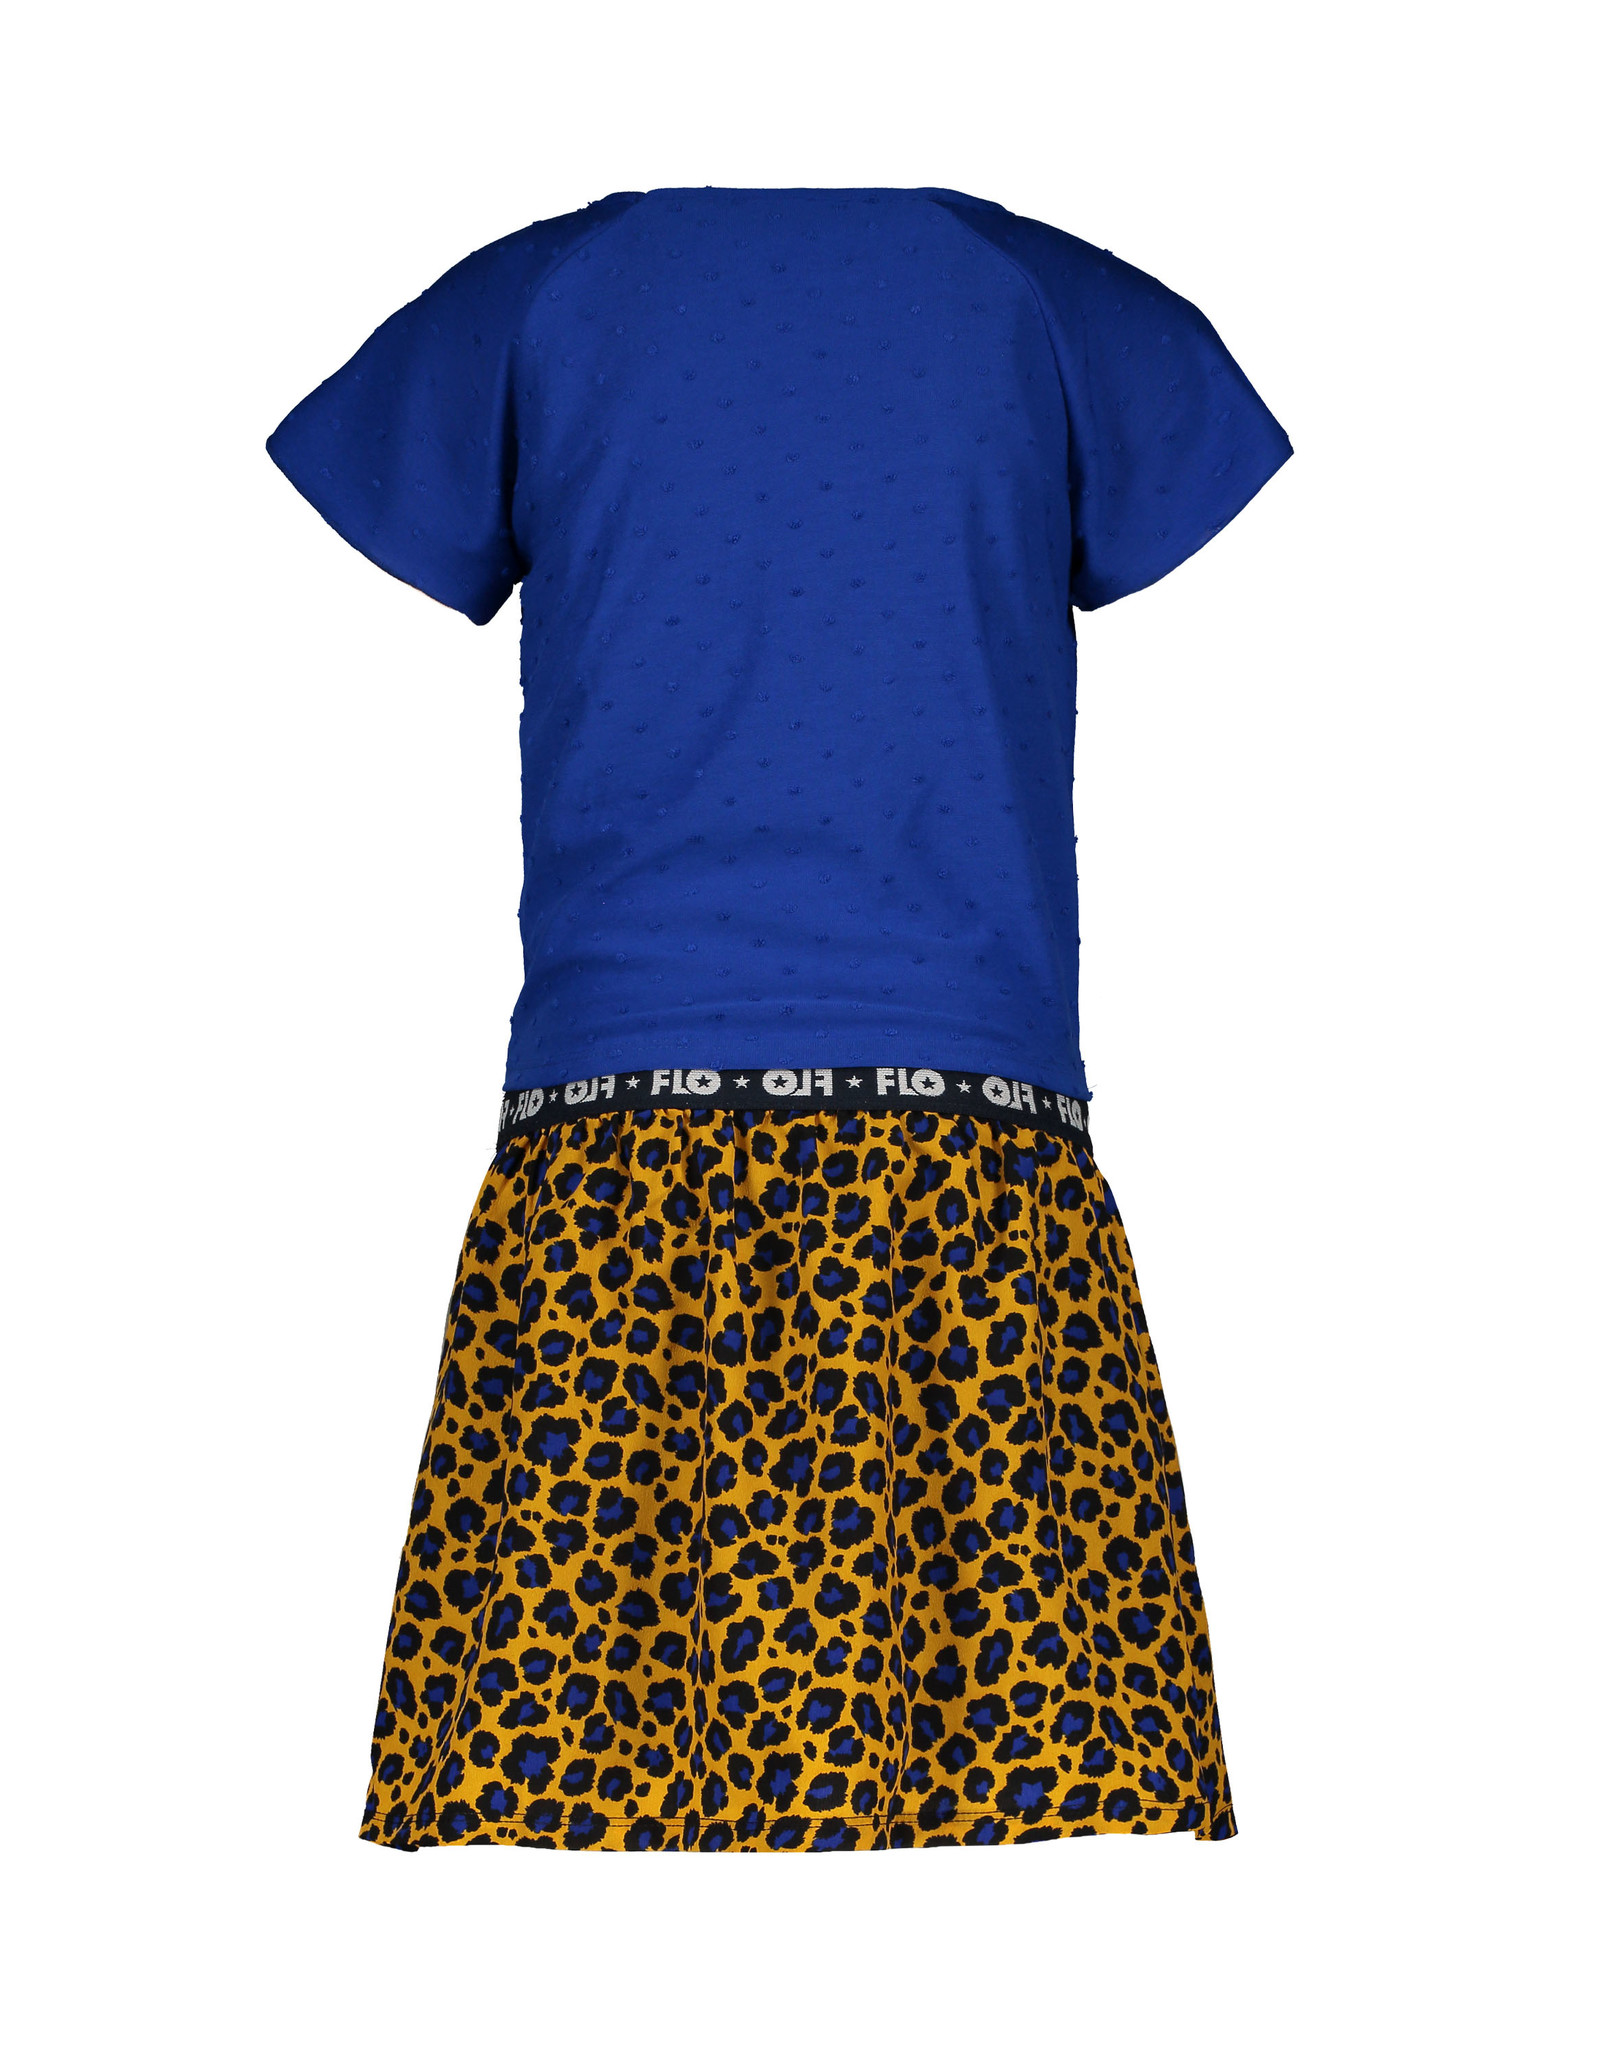 Like Flo Flo girls 2pc viscose dot dress with AO panter skirt and knotted stripe tee